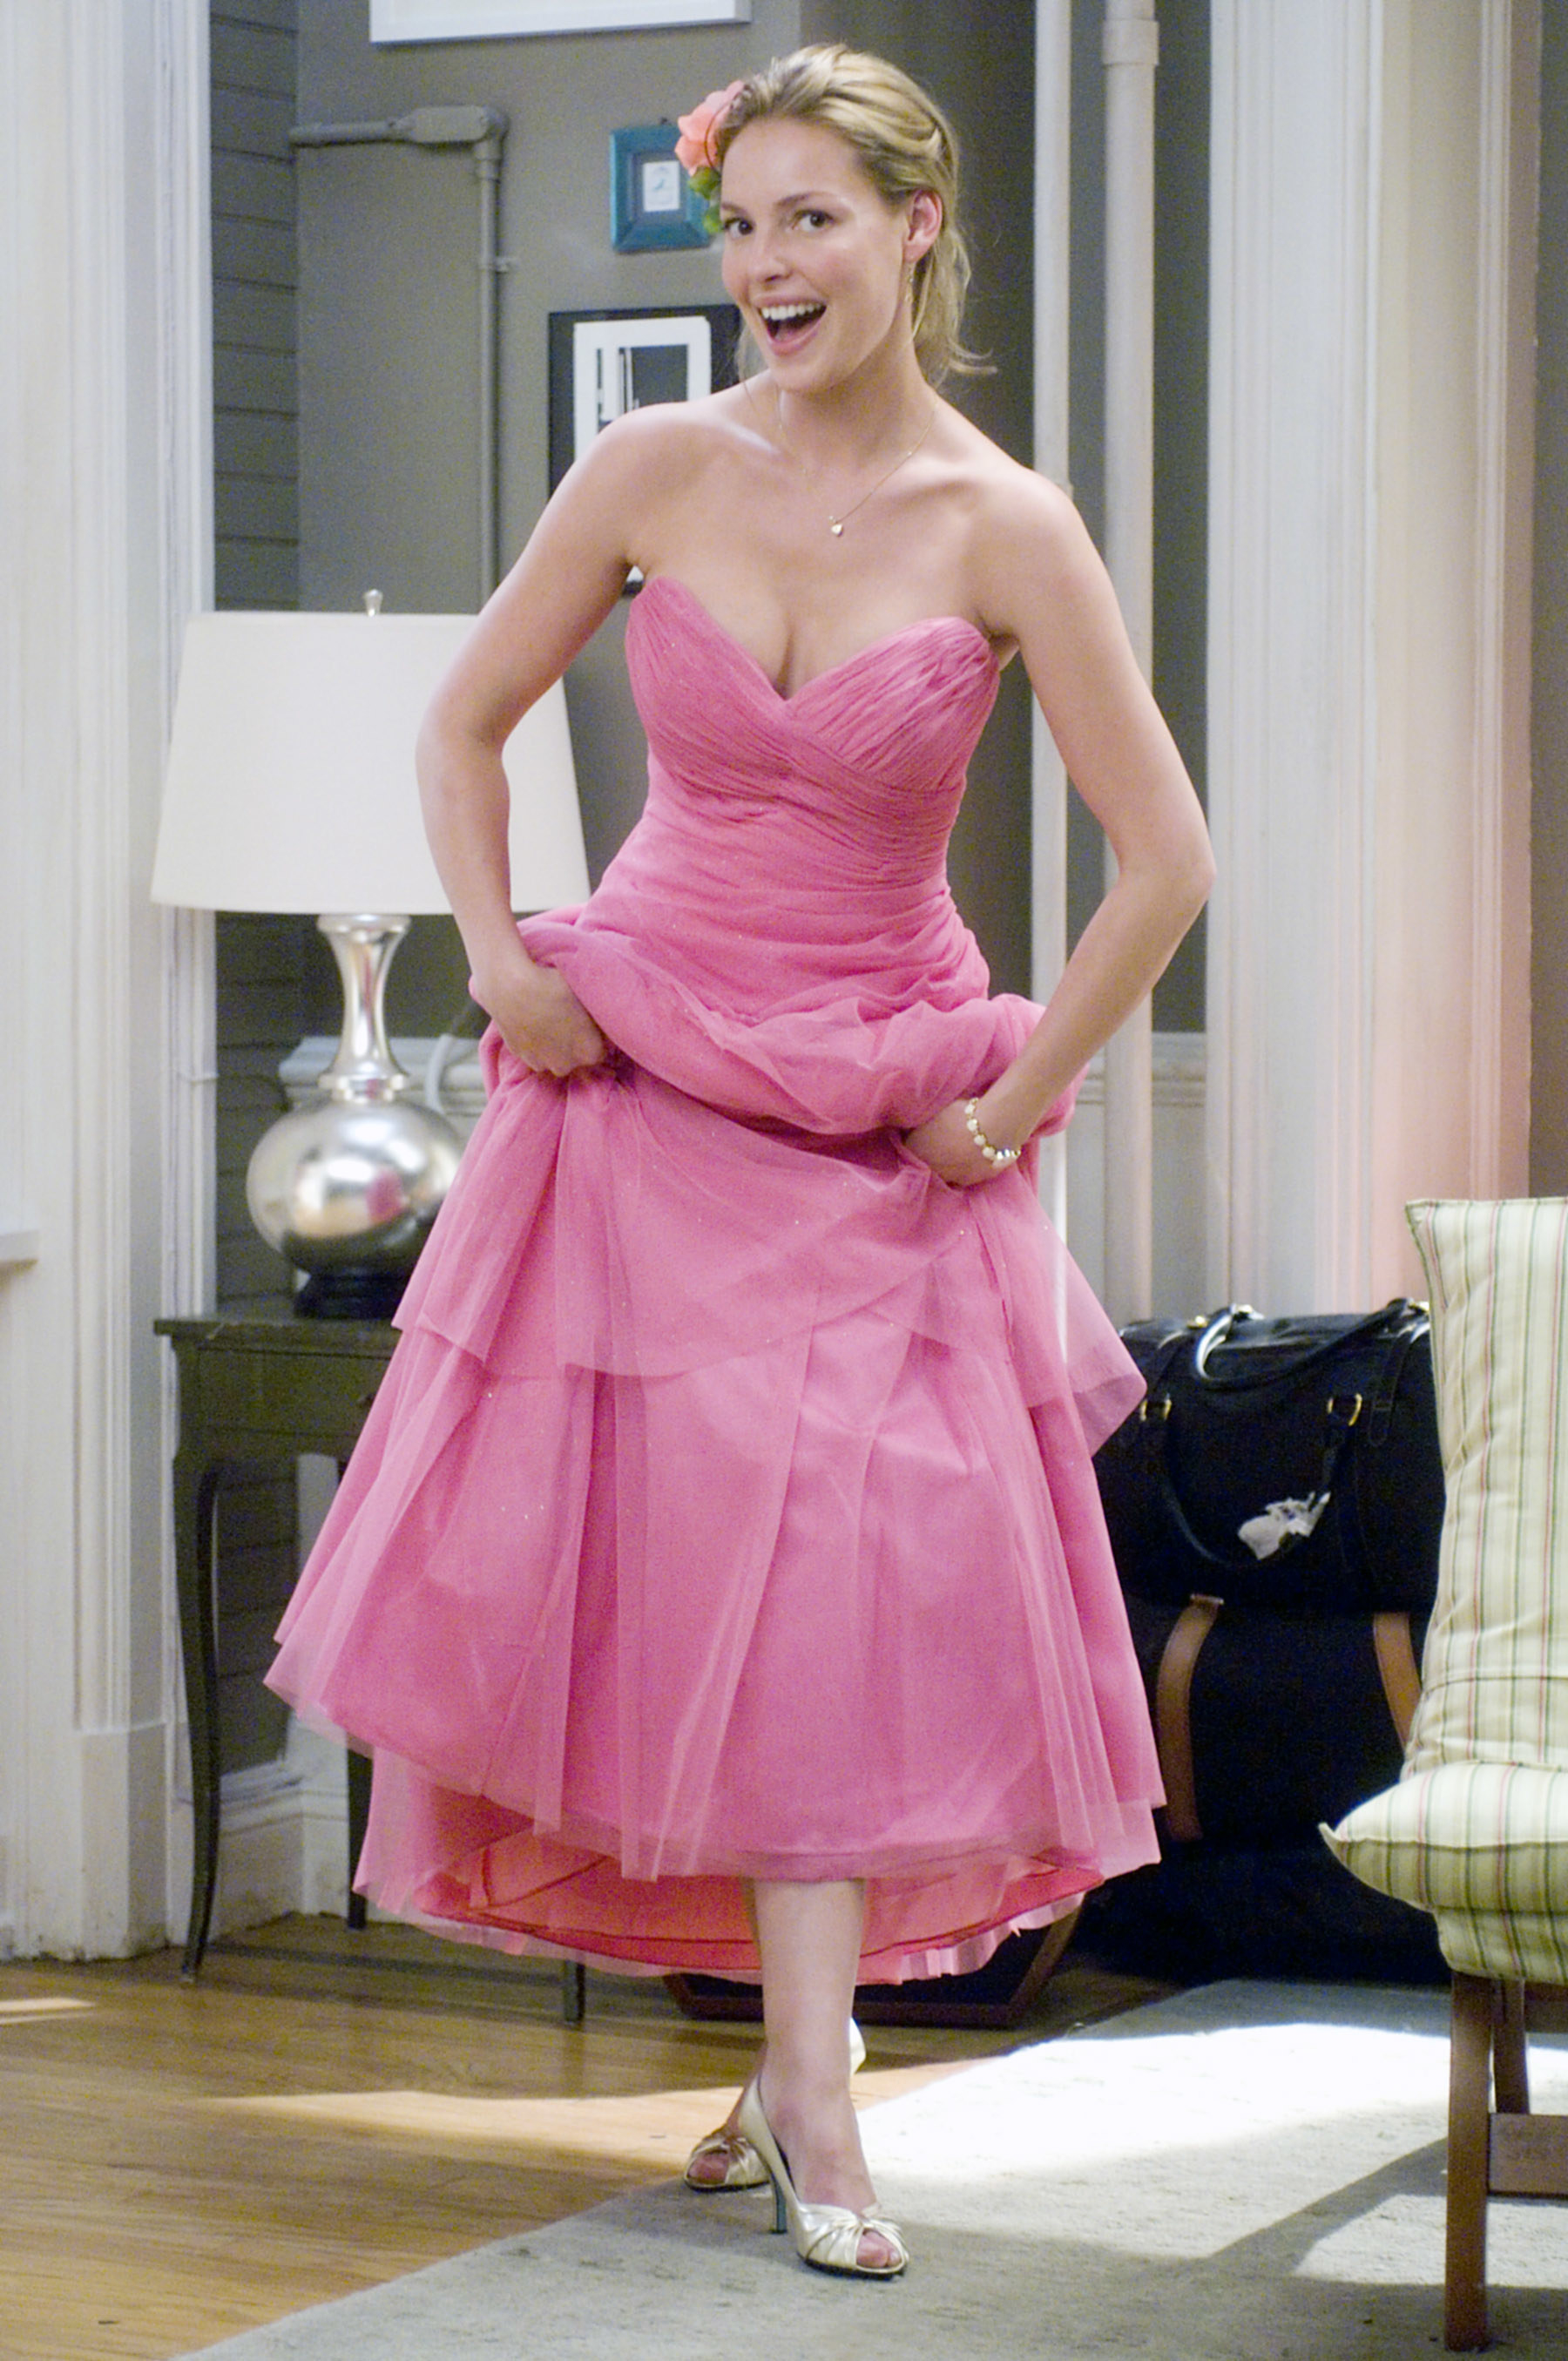 Jane lifts up the hem of a pink dress with a sweetheart neckline